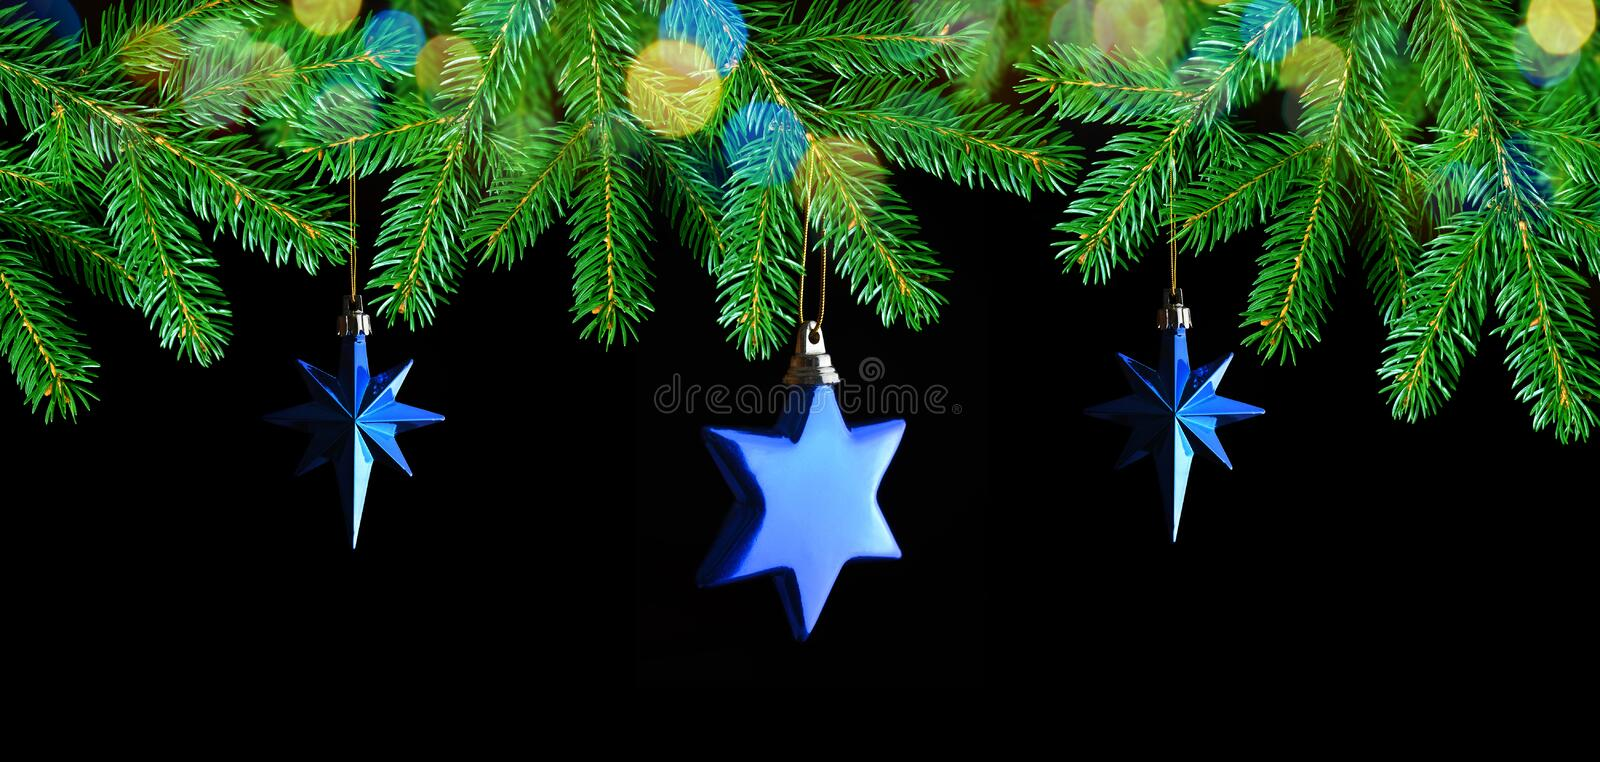 Christmas decorations in the shape star hanging on fir branch. stock photography